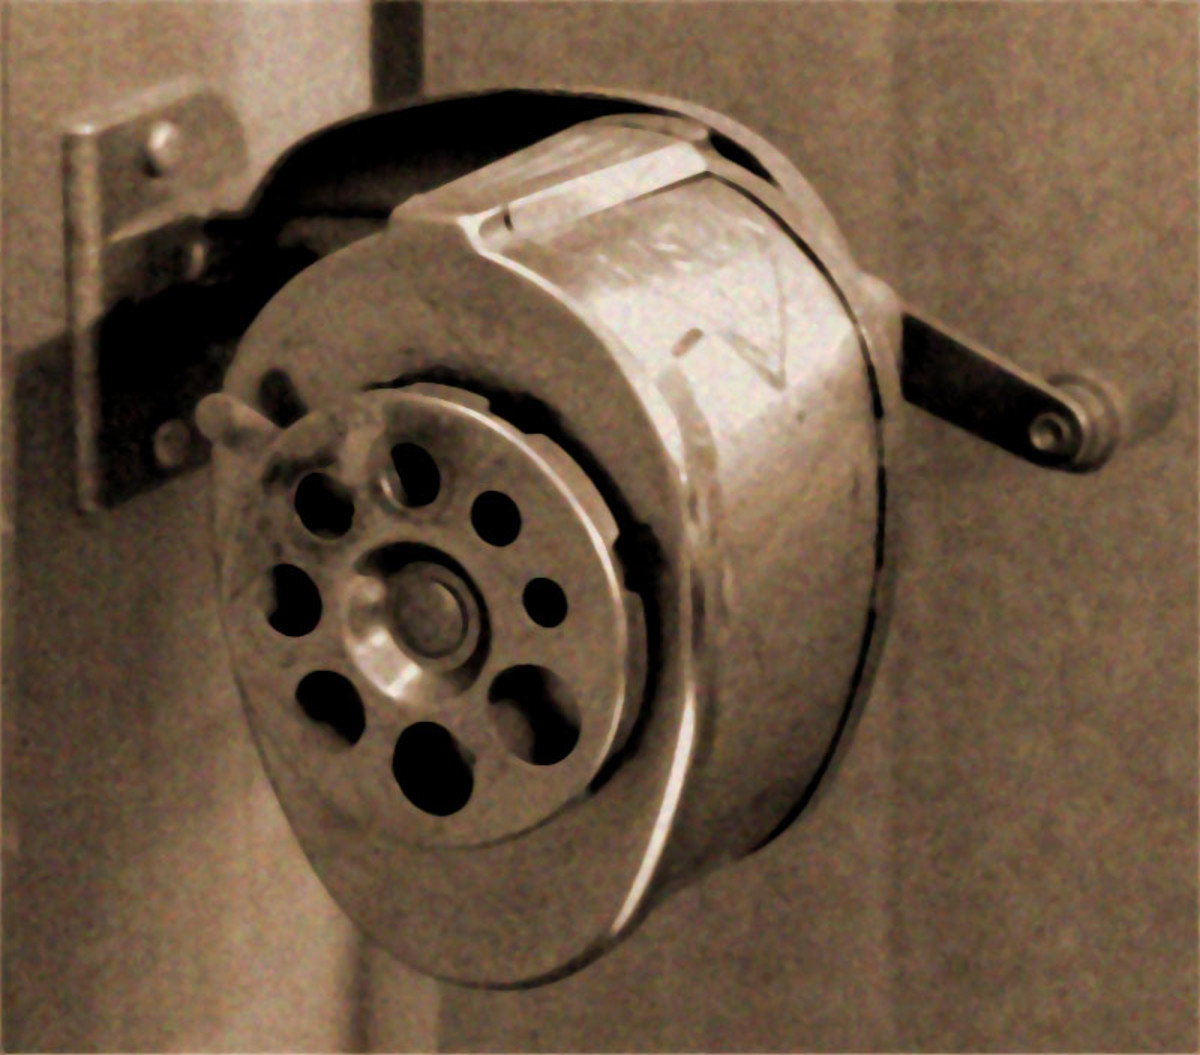 How My Marriage Began with a Pencil Sharpener